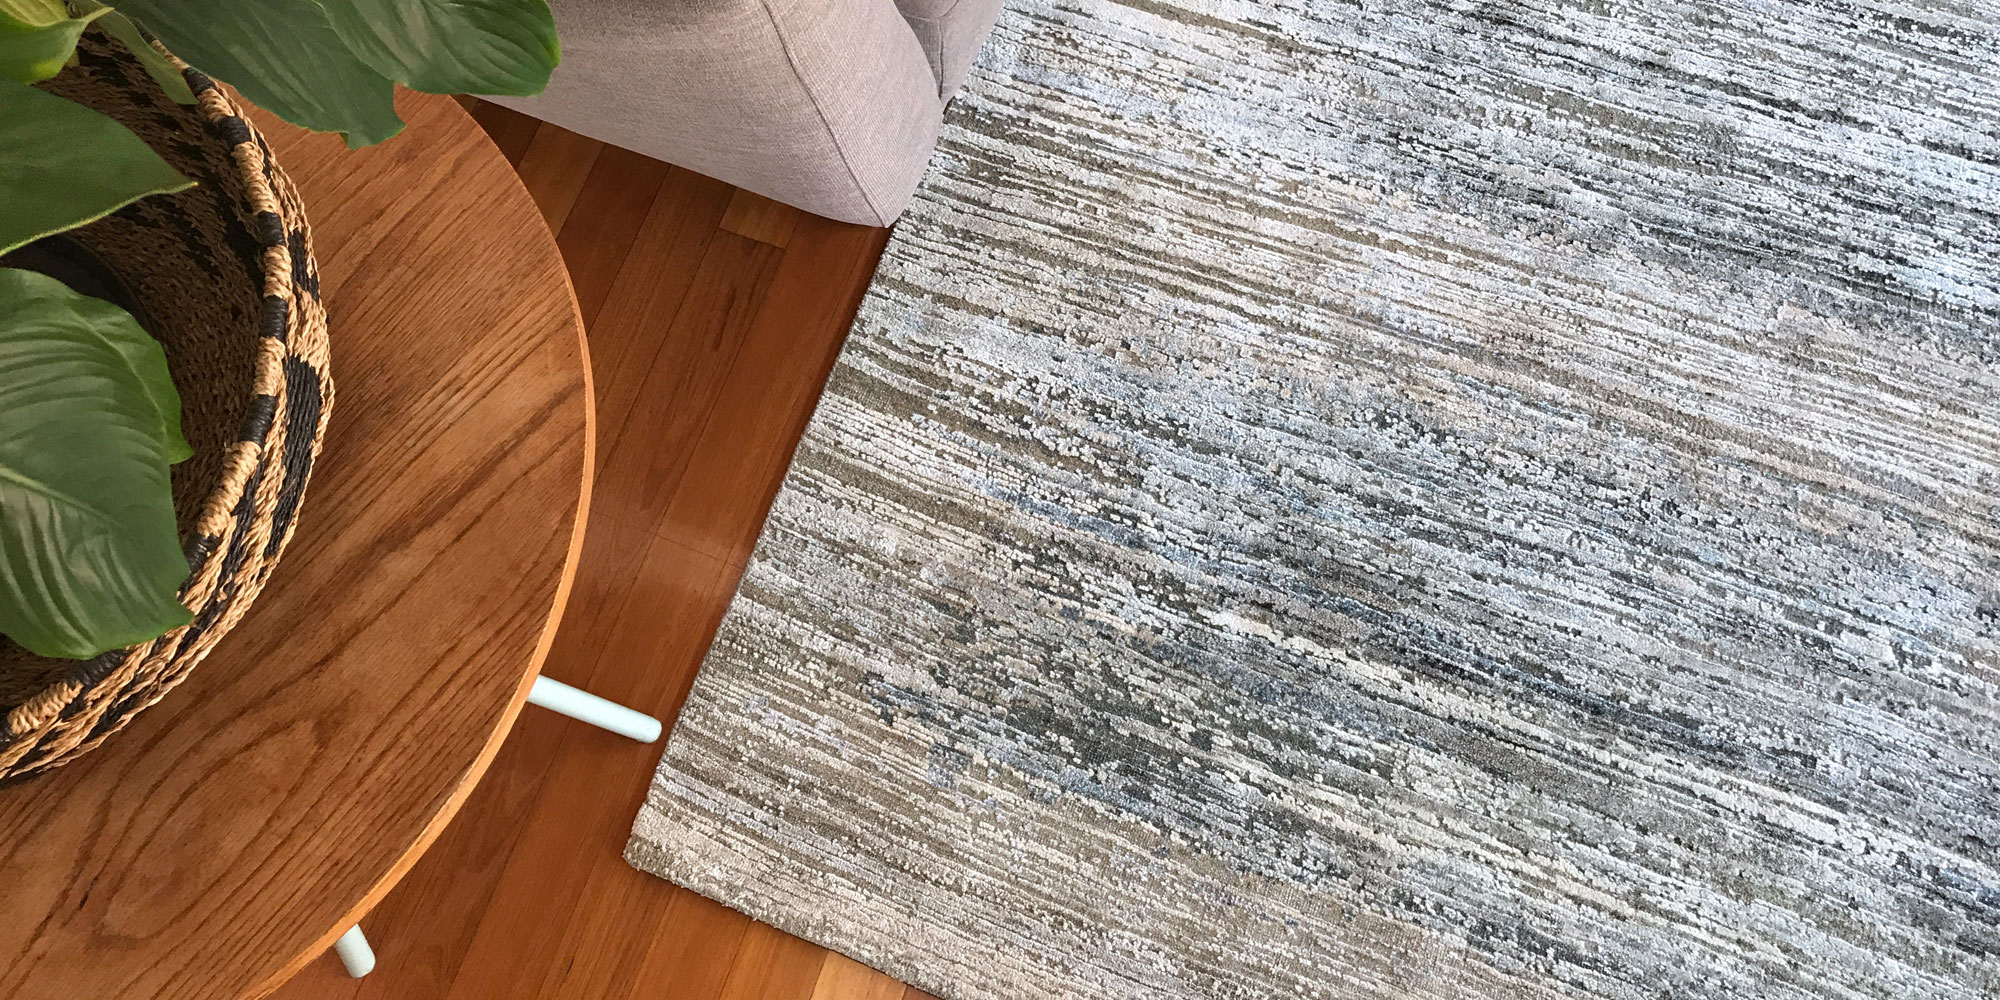 What are the best rugs for high traffic areas?